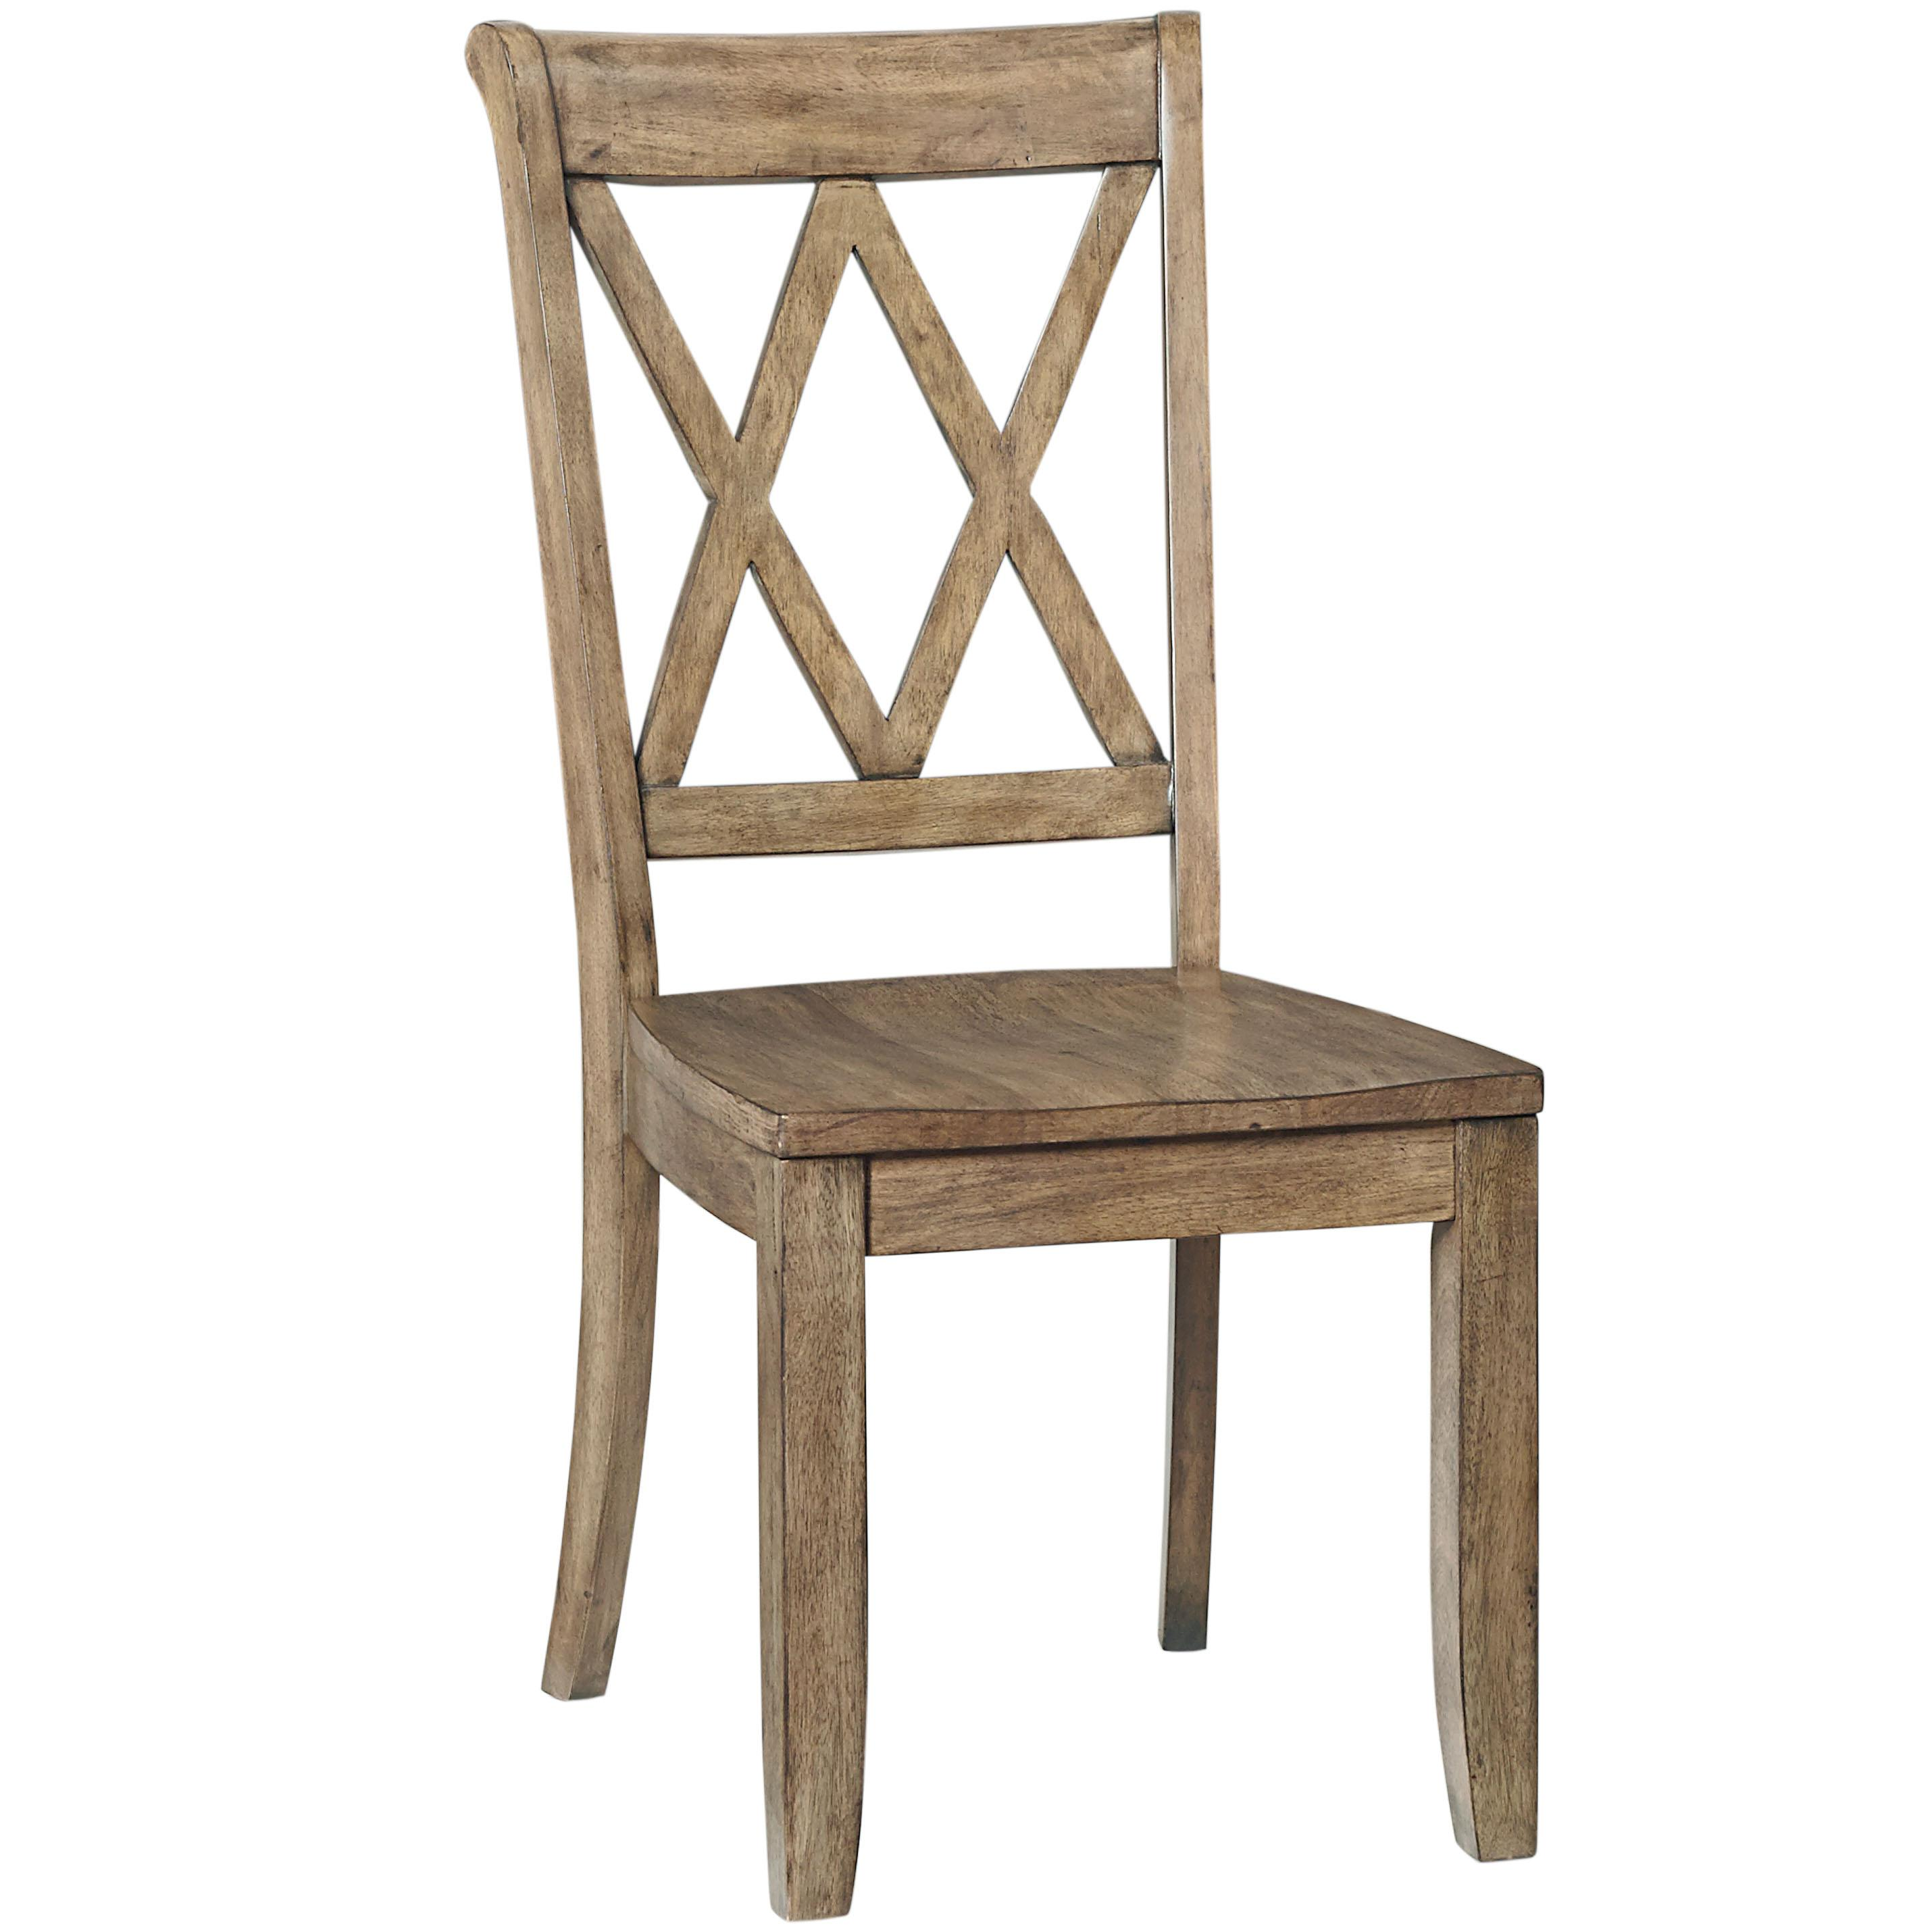 x back dining chairs. Dining Side Chair With X Back Chairs C